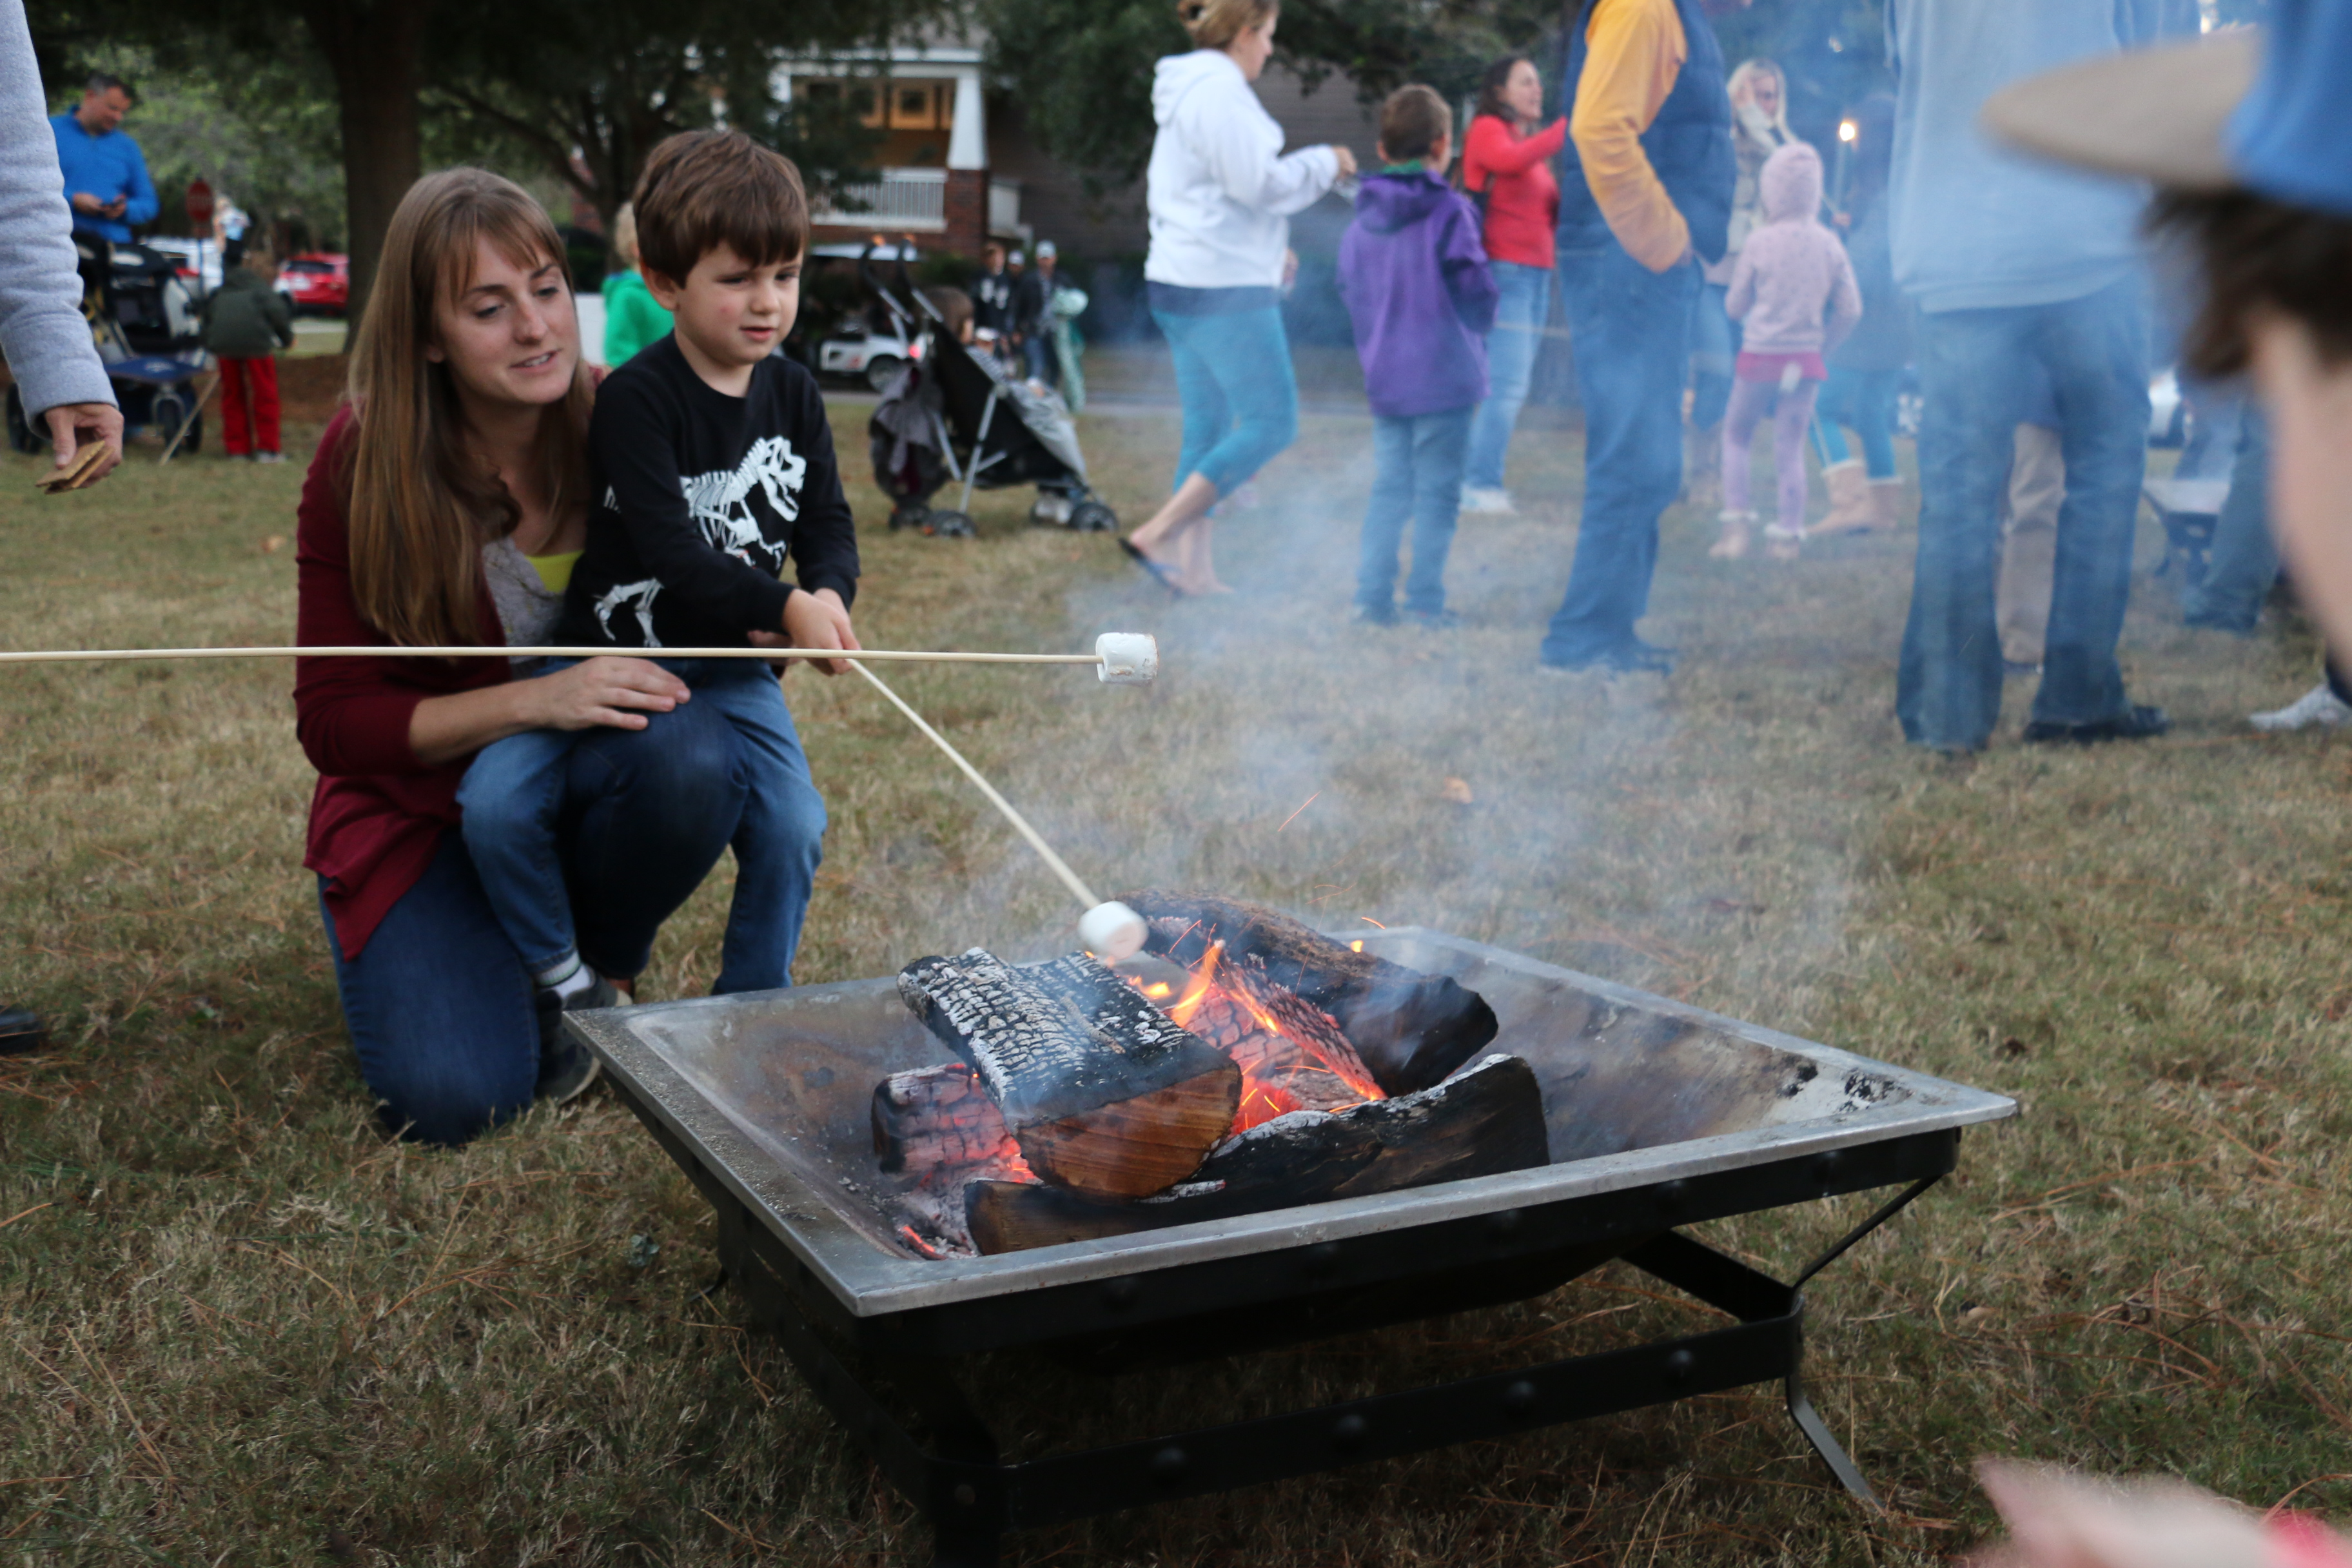 The fire pit, provided and supervised by Daniel Island Boy Scout Troop 519, was a popular spot for roasting s'mores.